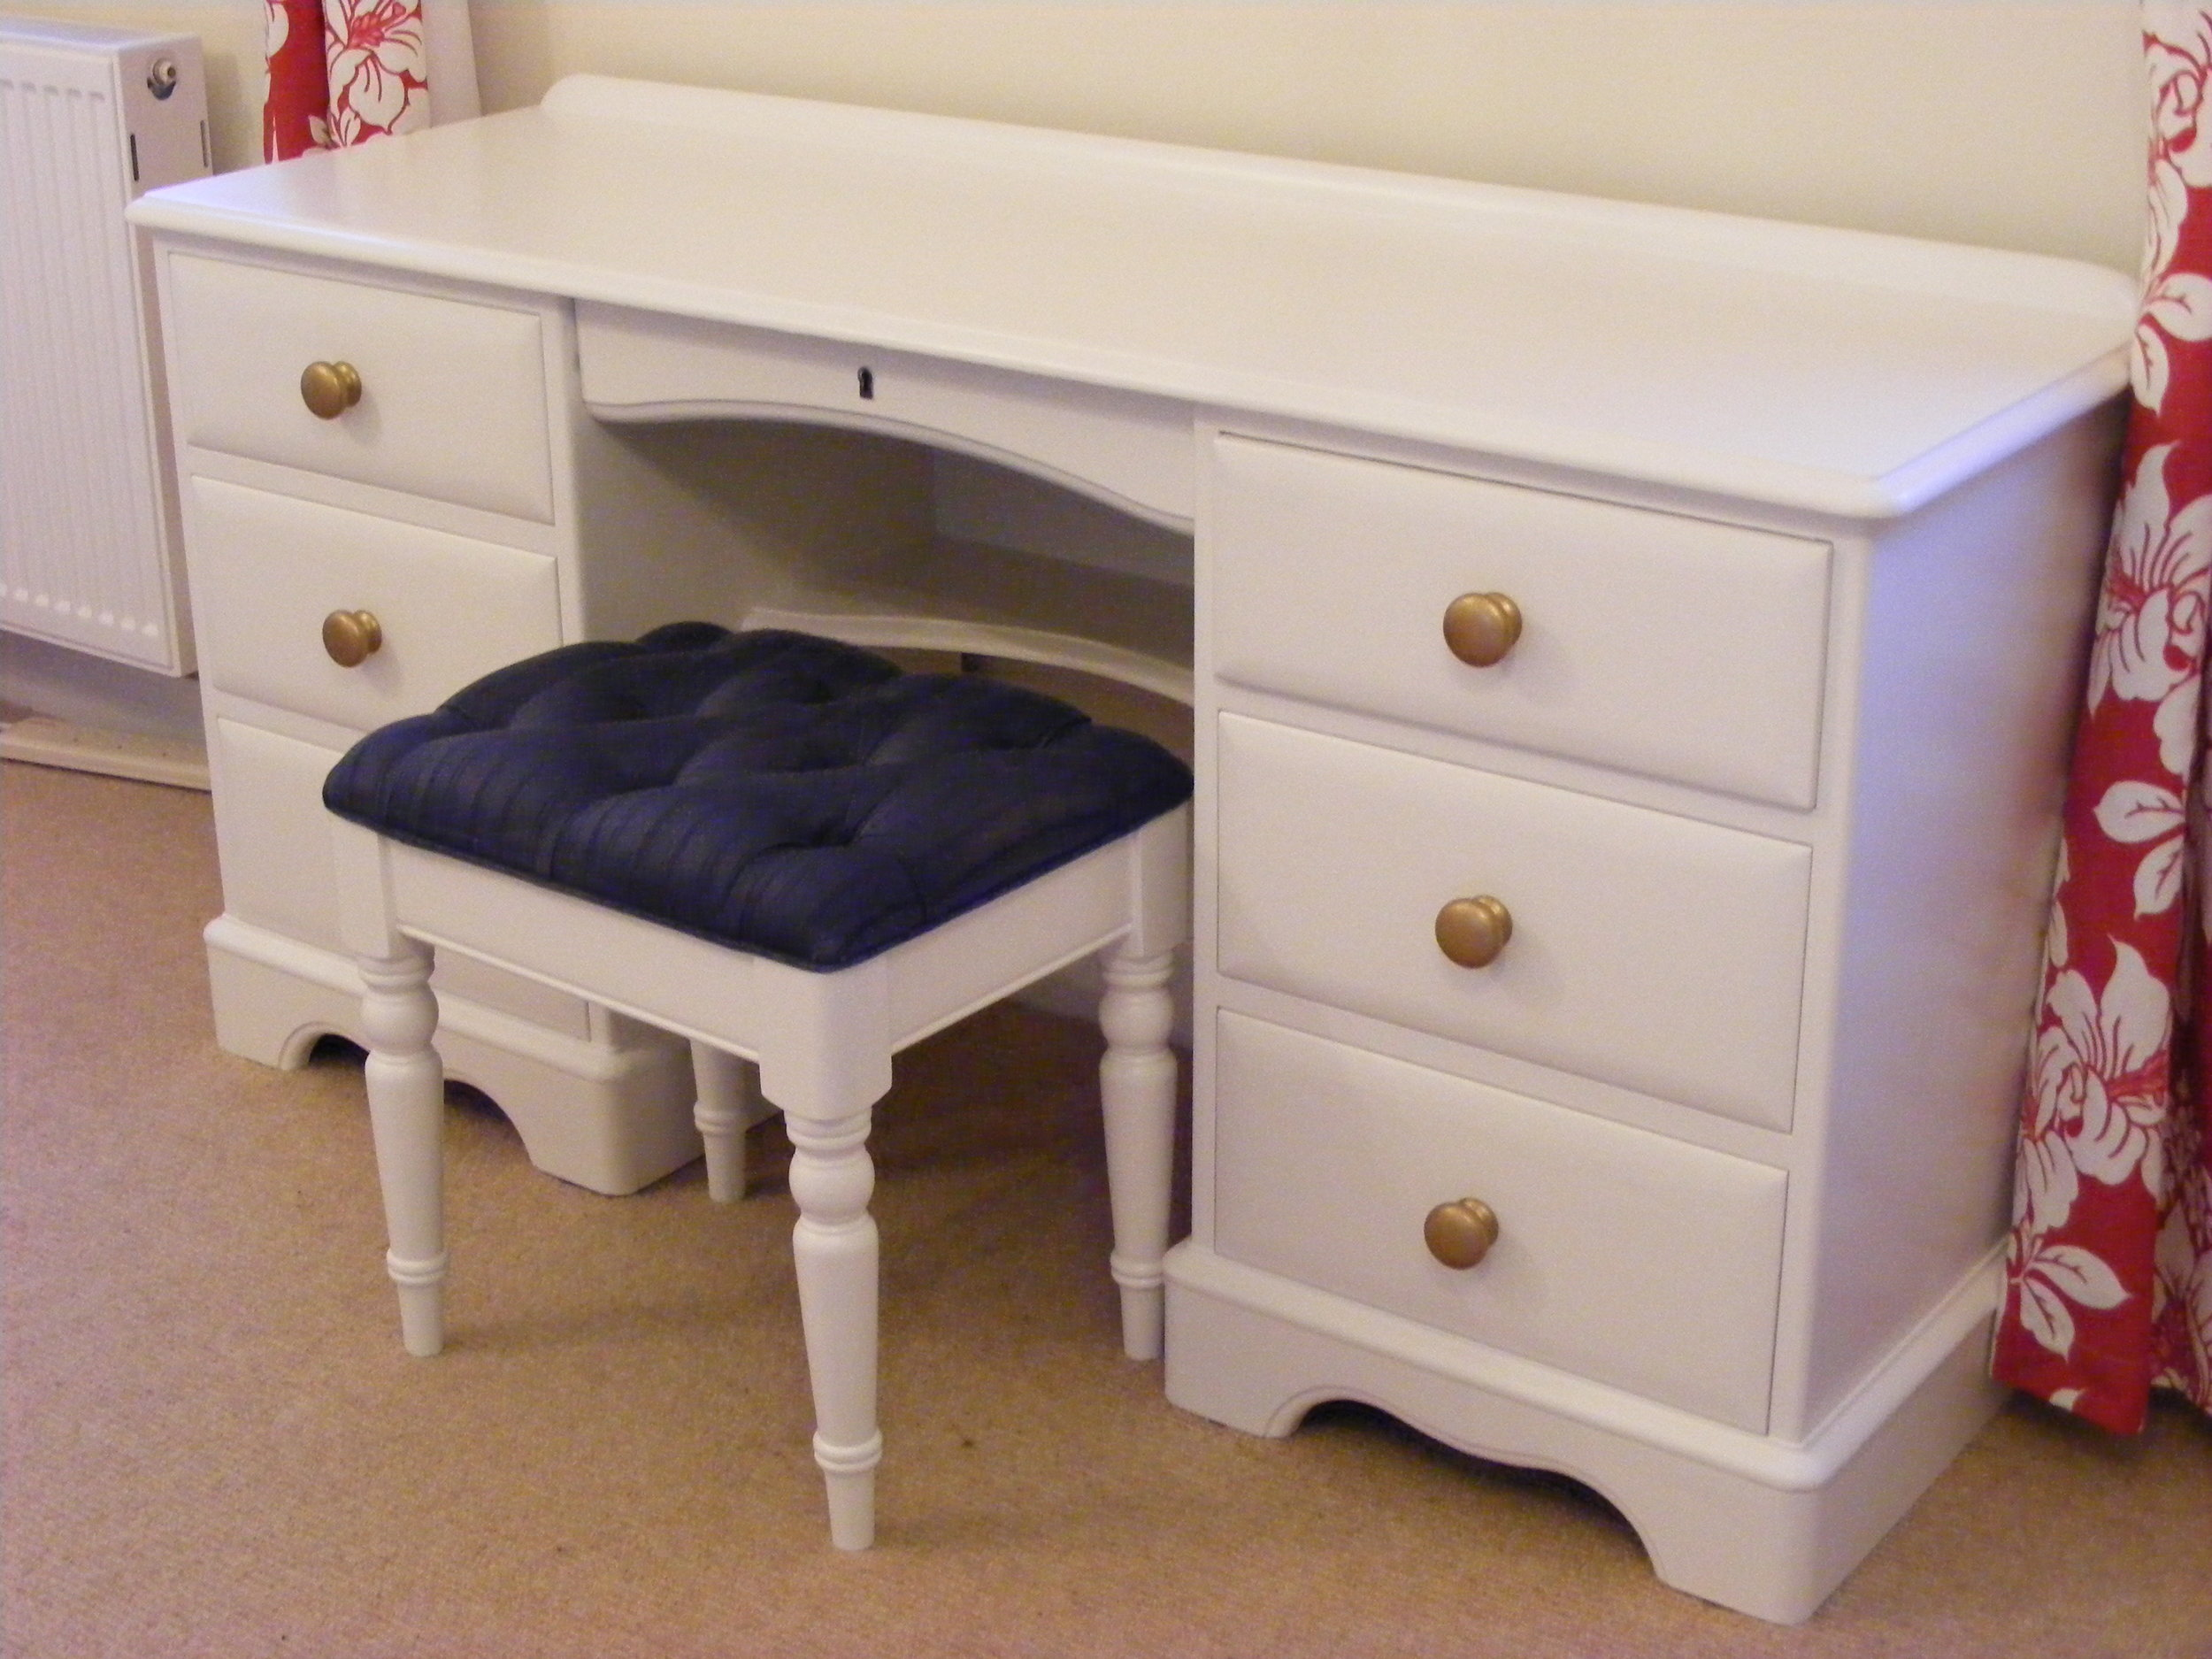 Bedroom furniture painting in Swindon, Wiltshire